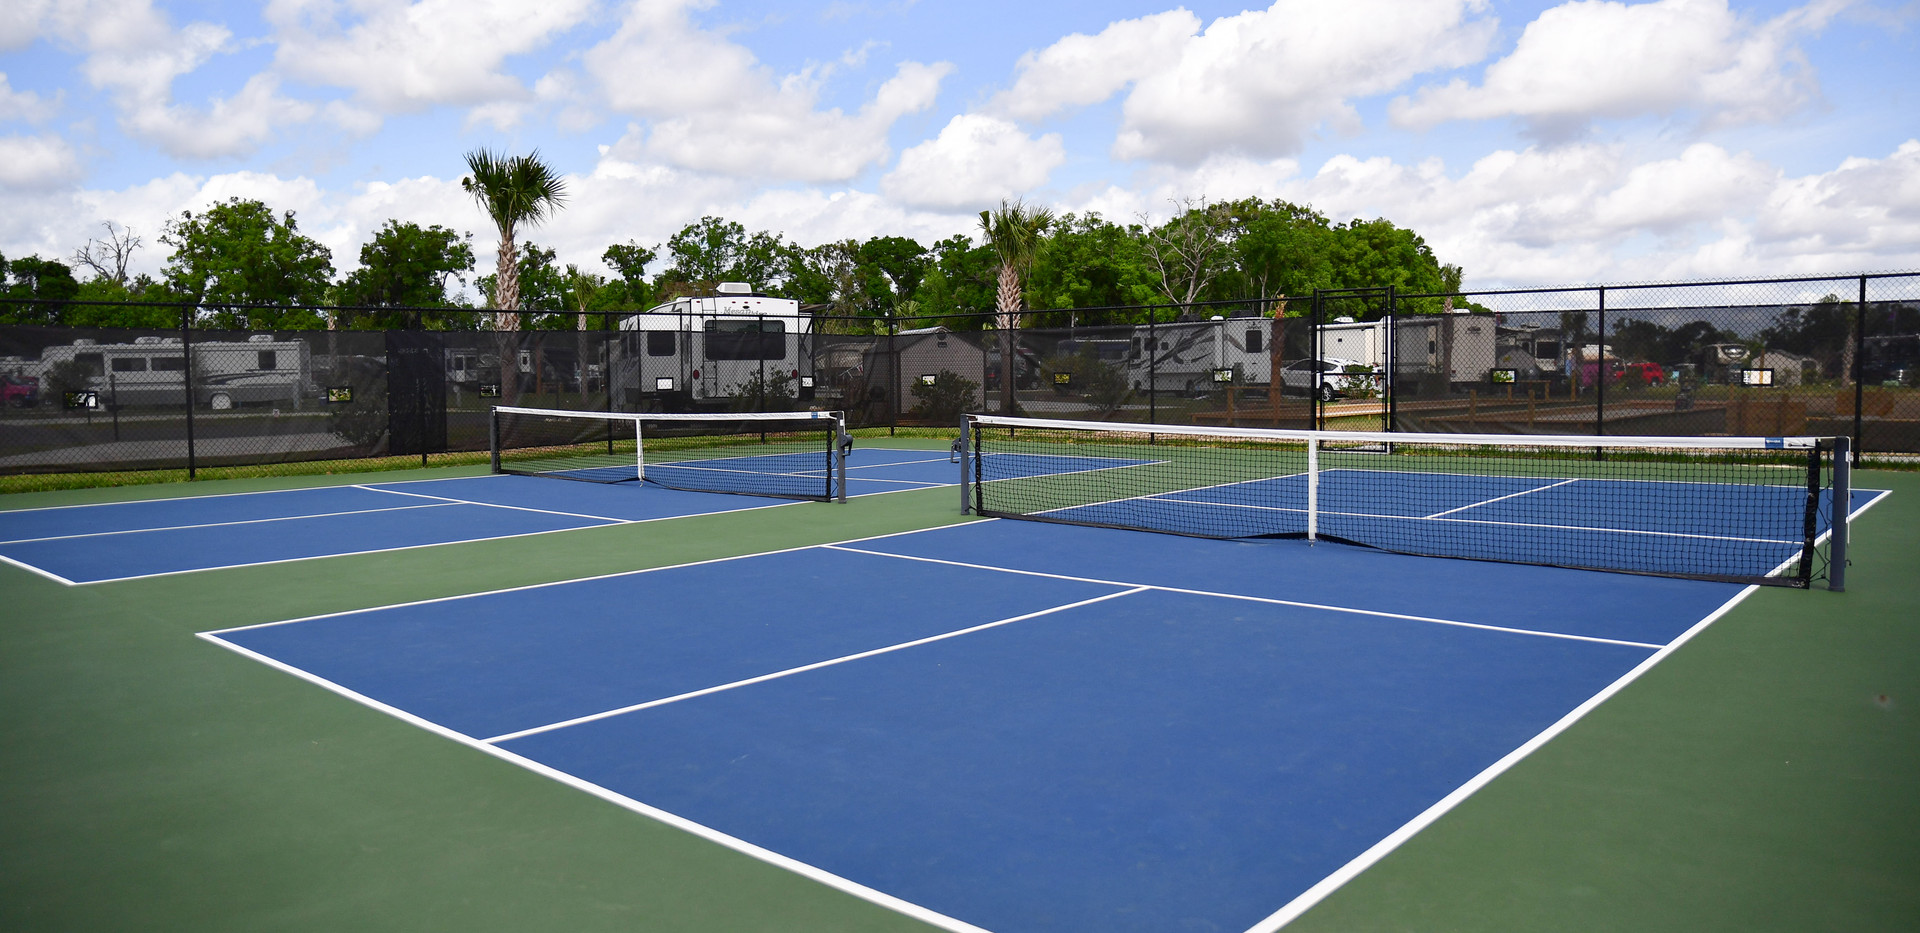 Tennis at Pickleball courts